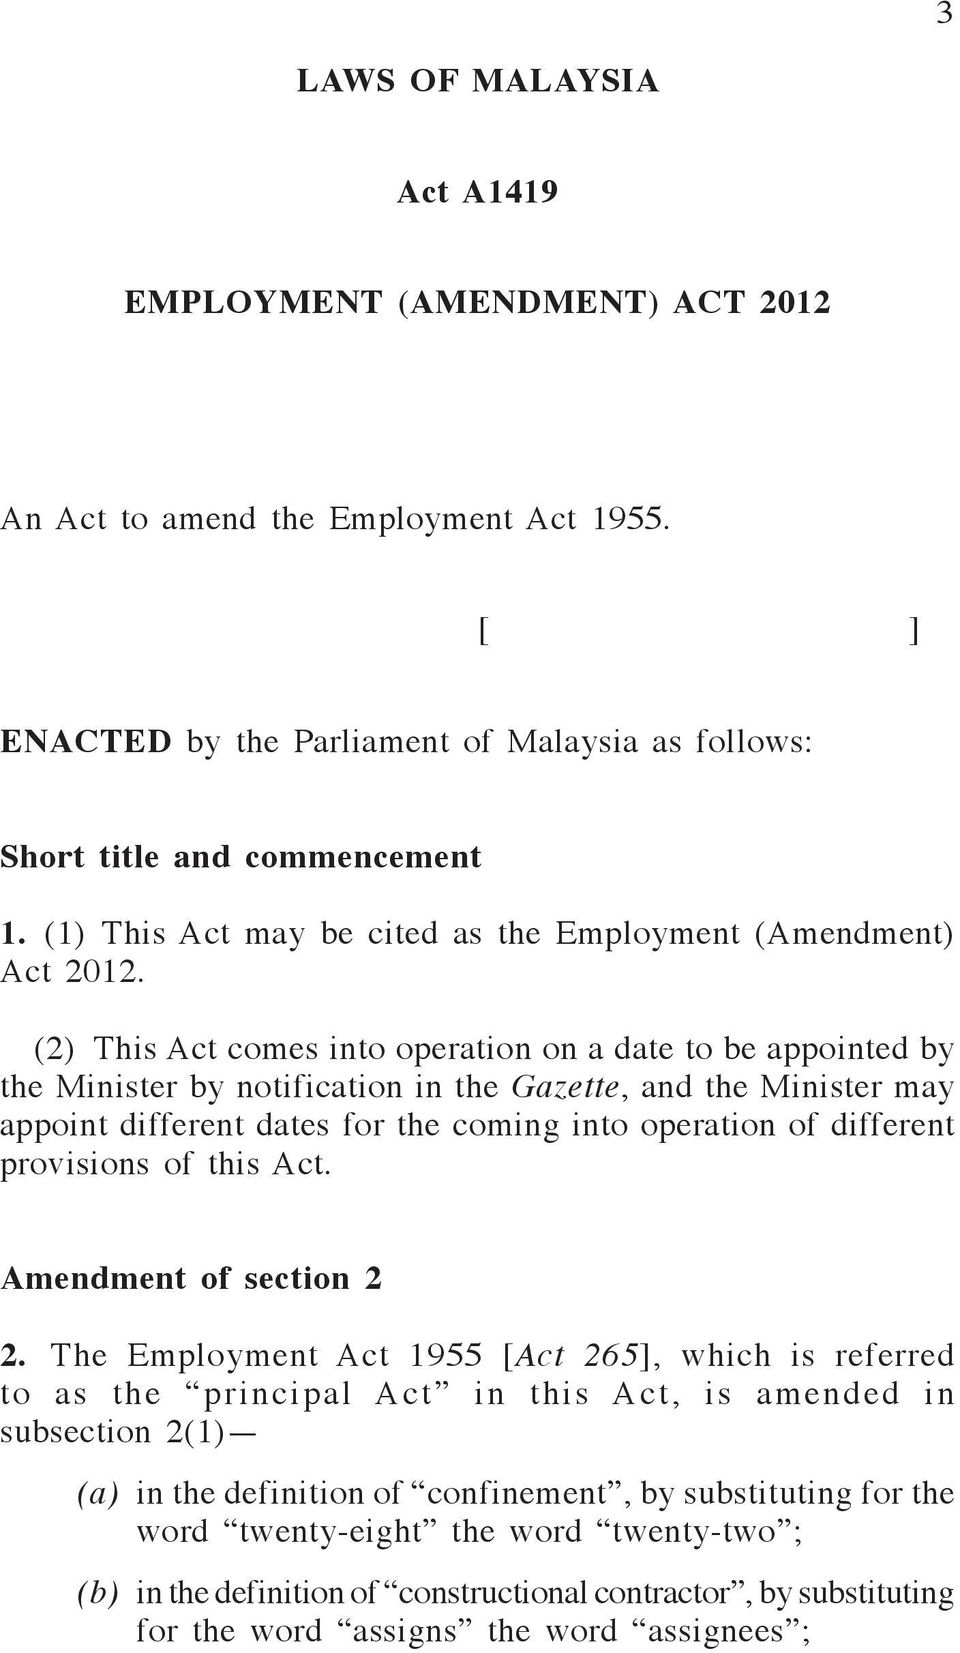 (2) This Act comes into operation on a date to be appointed by the Minister by notification in the Gazette, and the Minister may appoint different dates for the coming into operation of different